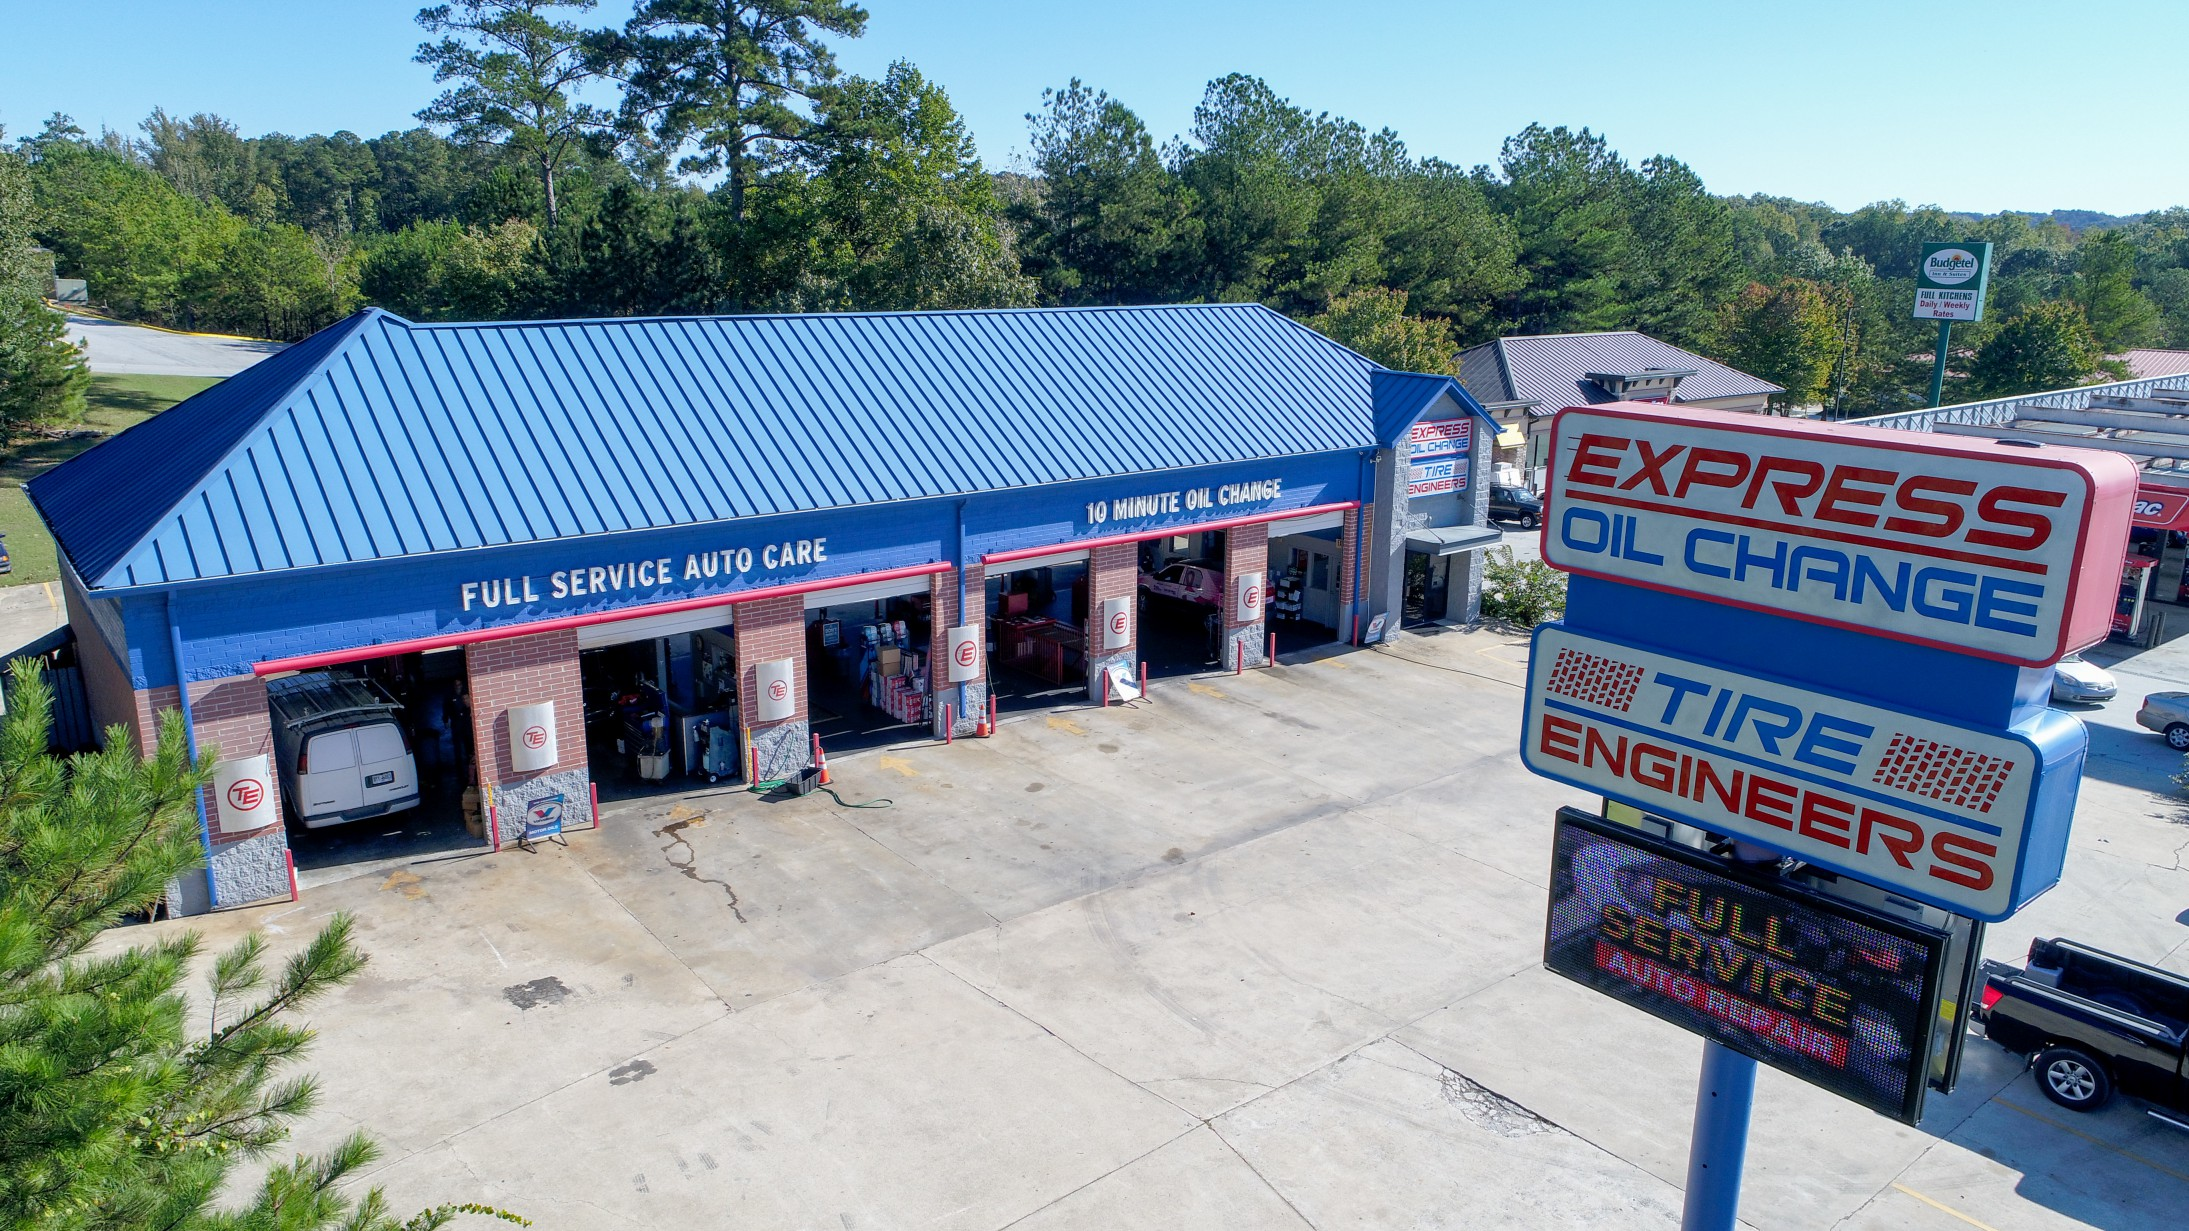 Express Oil Change & Tire Engineers Lithia Springs, GA - Thornton Road store